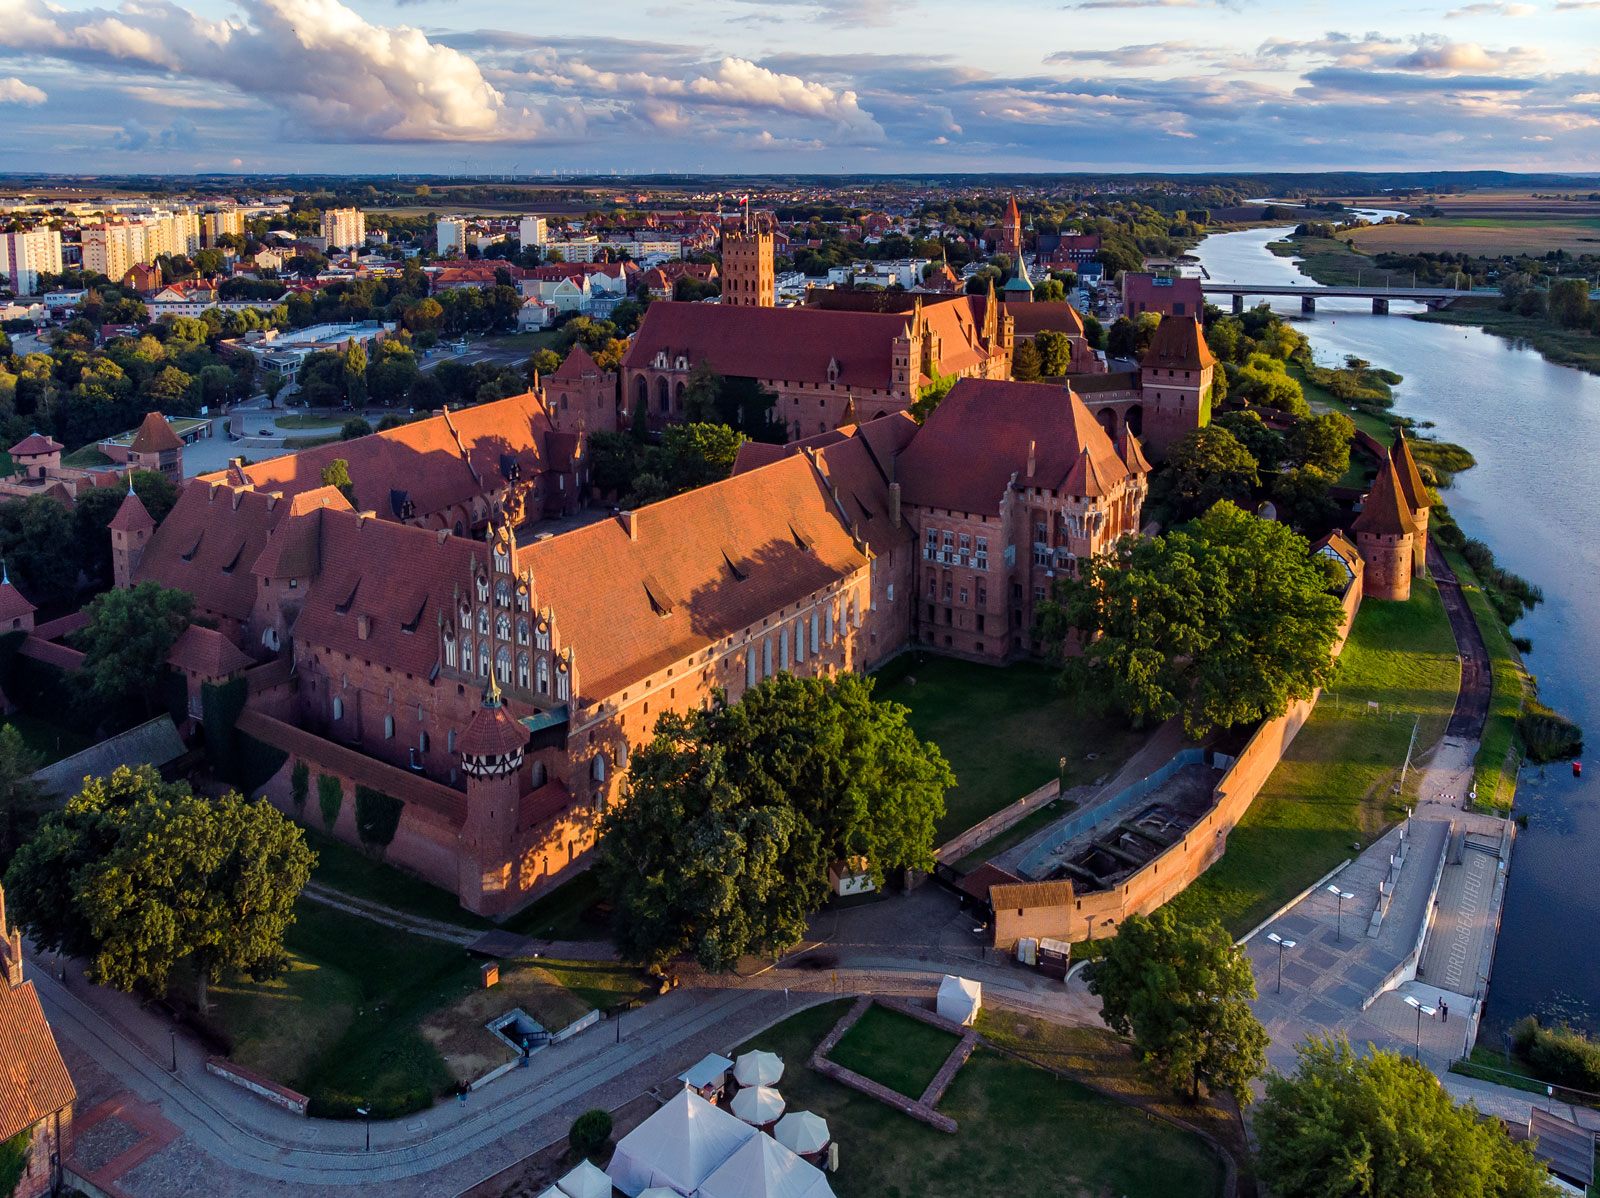 Malbork from a bird's eye view